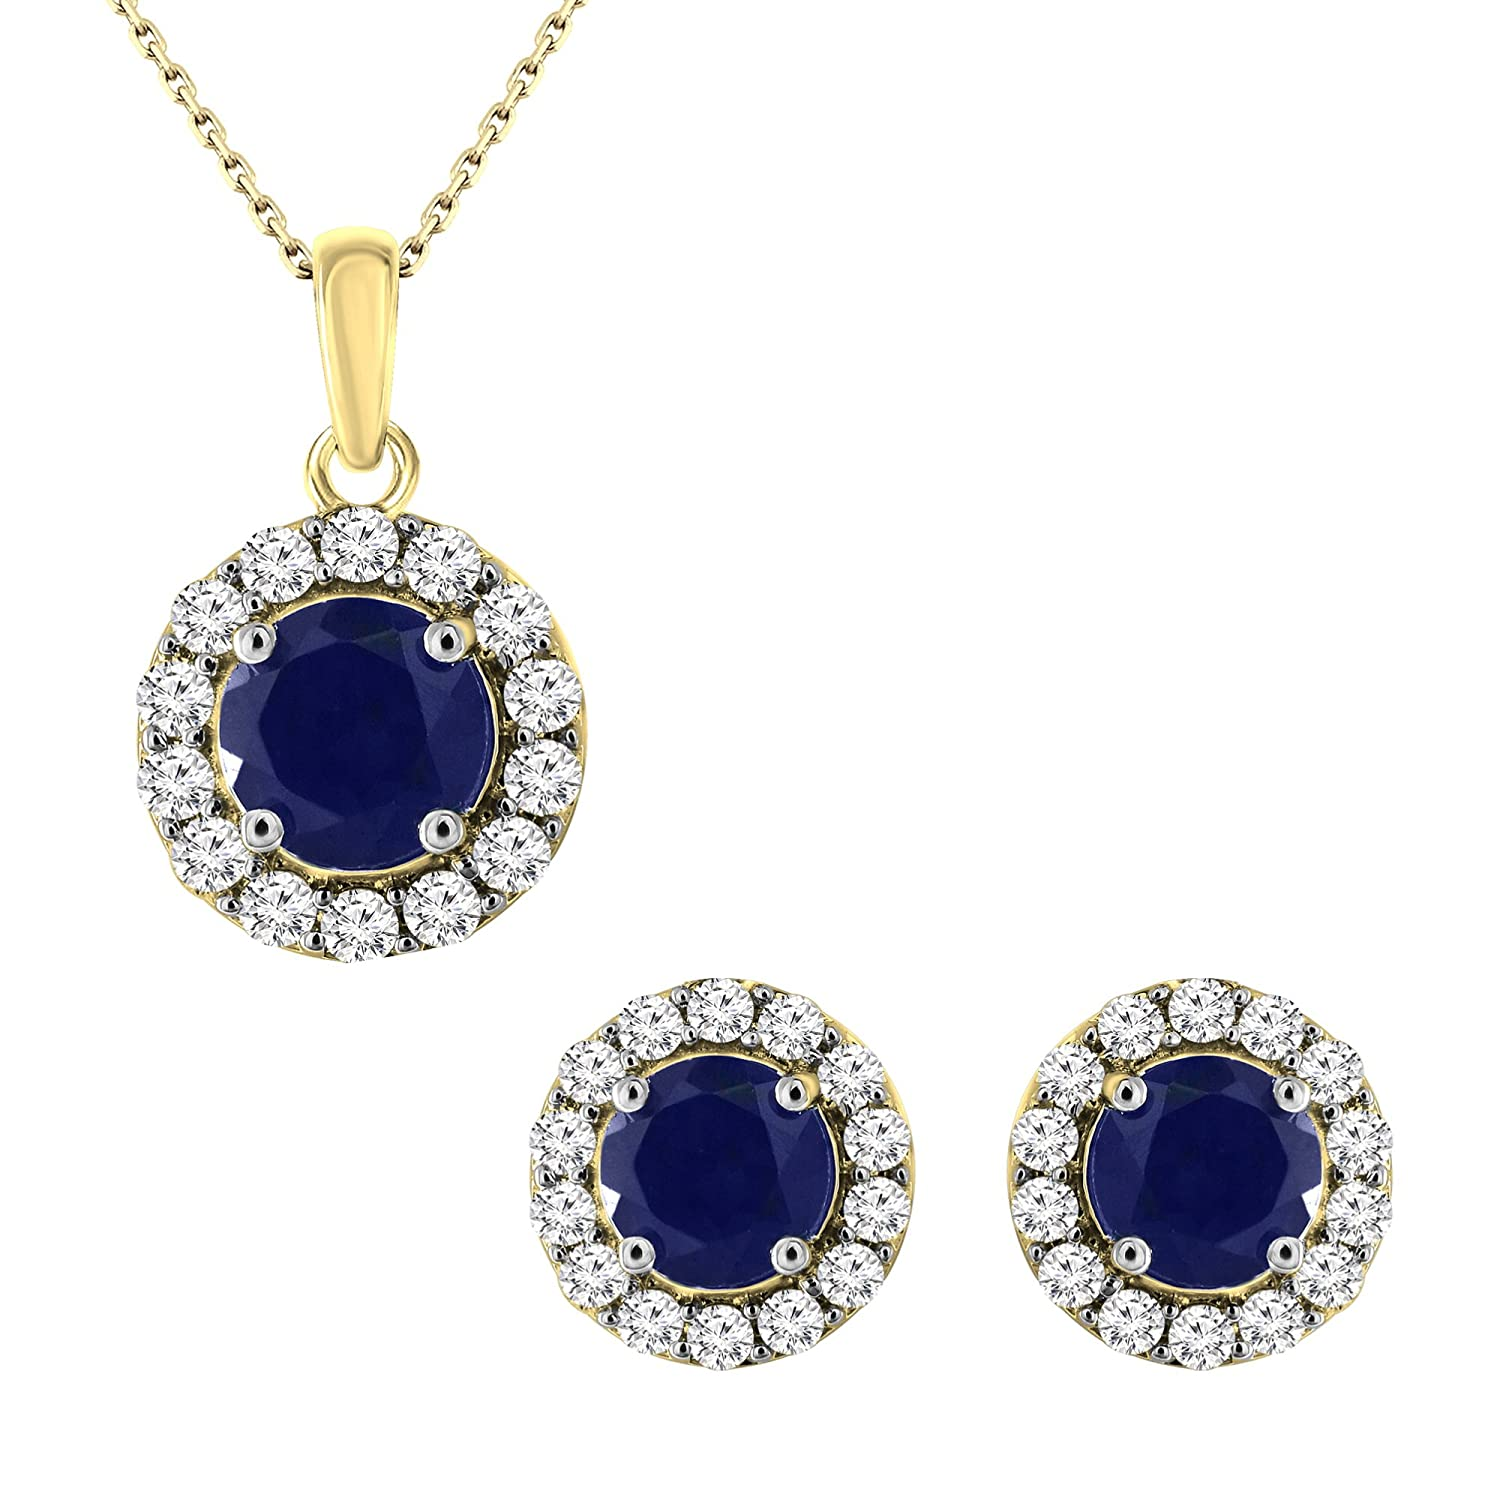 1.00 Ct. 14K Gold Natural Diamond Blue Sapphire Stud Earrings Pendant Jewelry Set (Free Silver Chain)